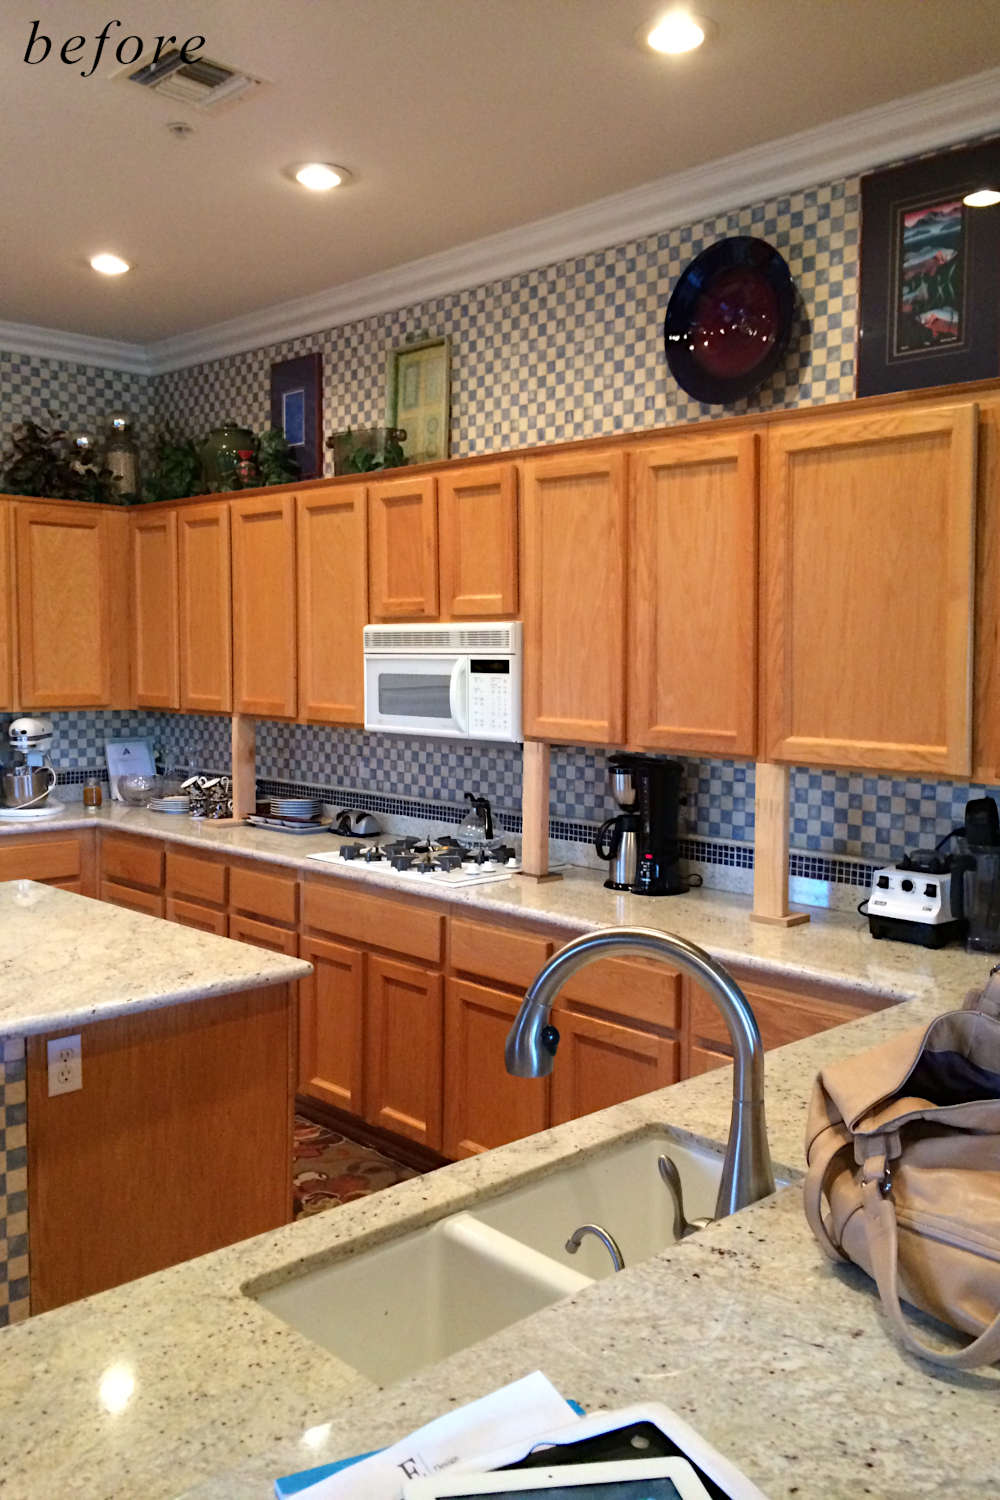 Before remodel image: falling apart old kitchen with basic brown cabinets.